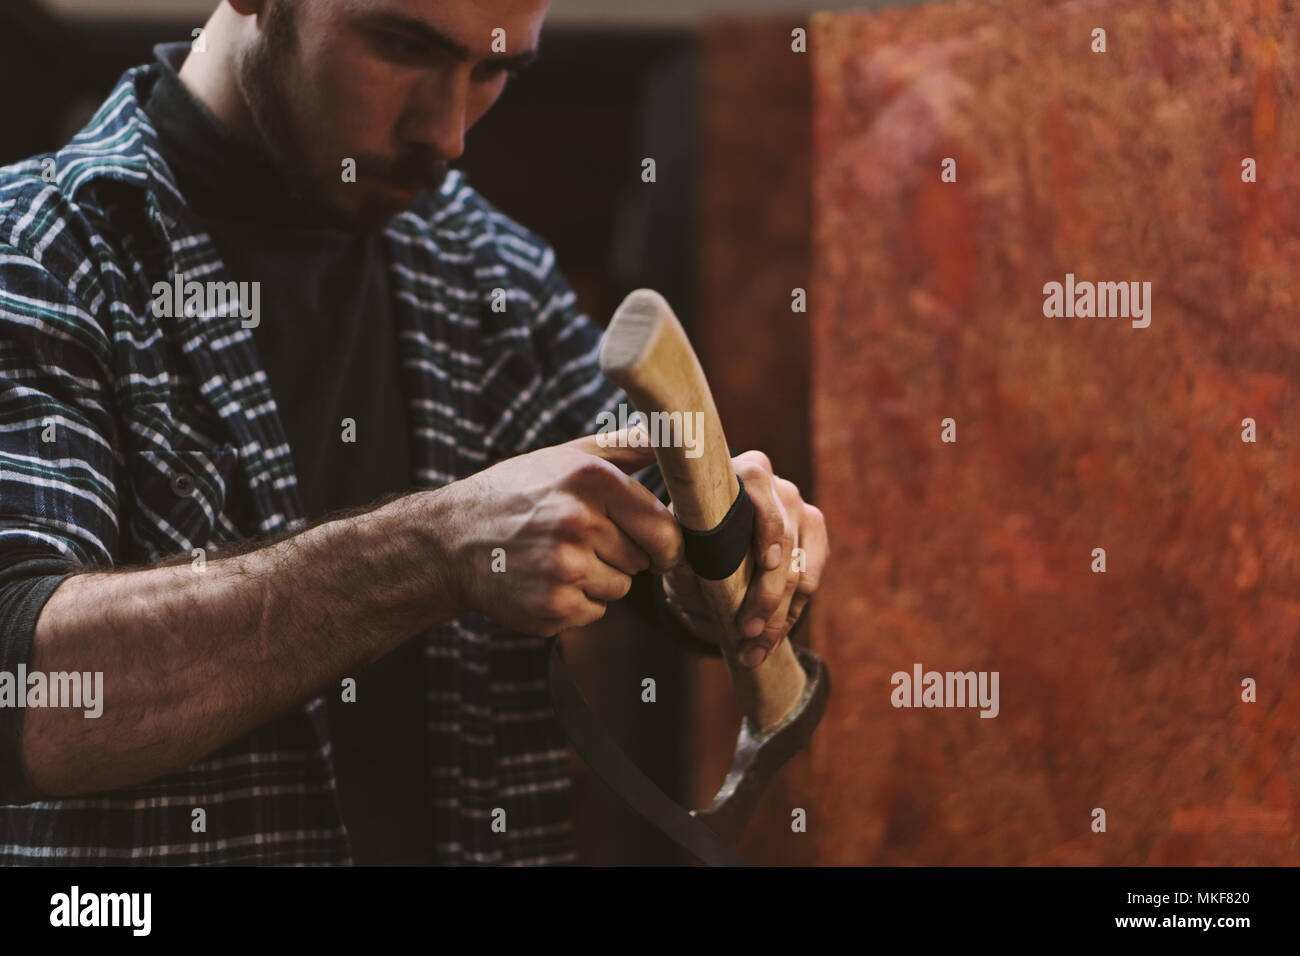 Man working in carpentry workshop. He wraps wooden handle of ax with leatherwork material. Men at work. Hand work. - Stock Image